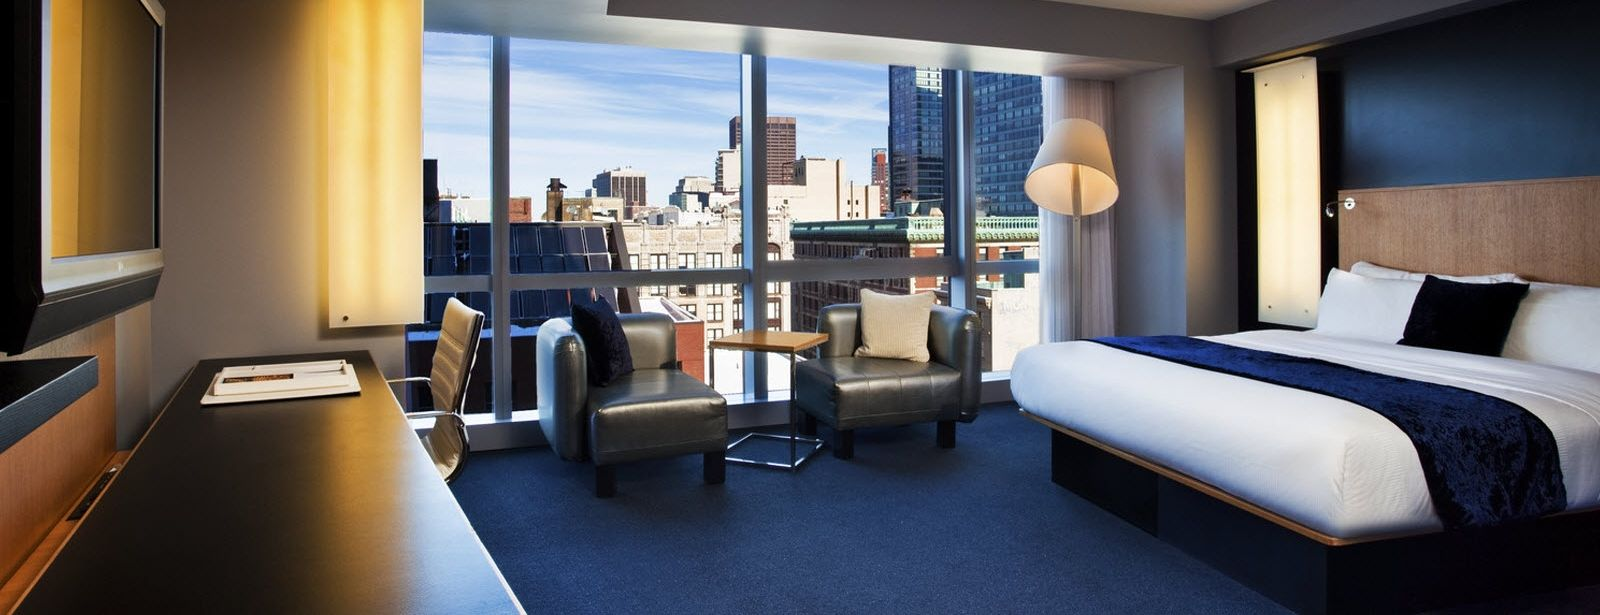 Hotel Rooms in Boston - Spectacular Room